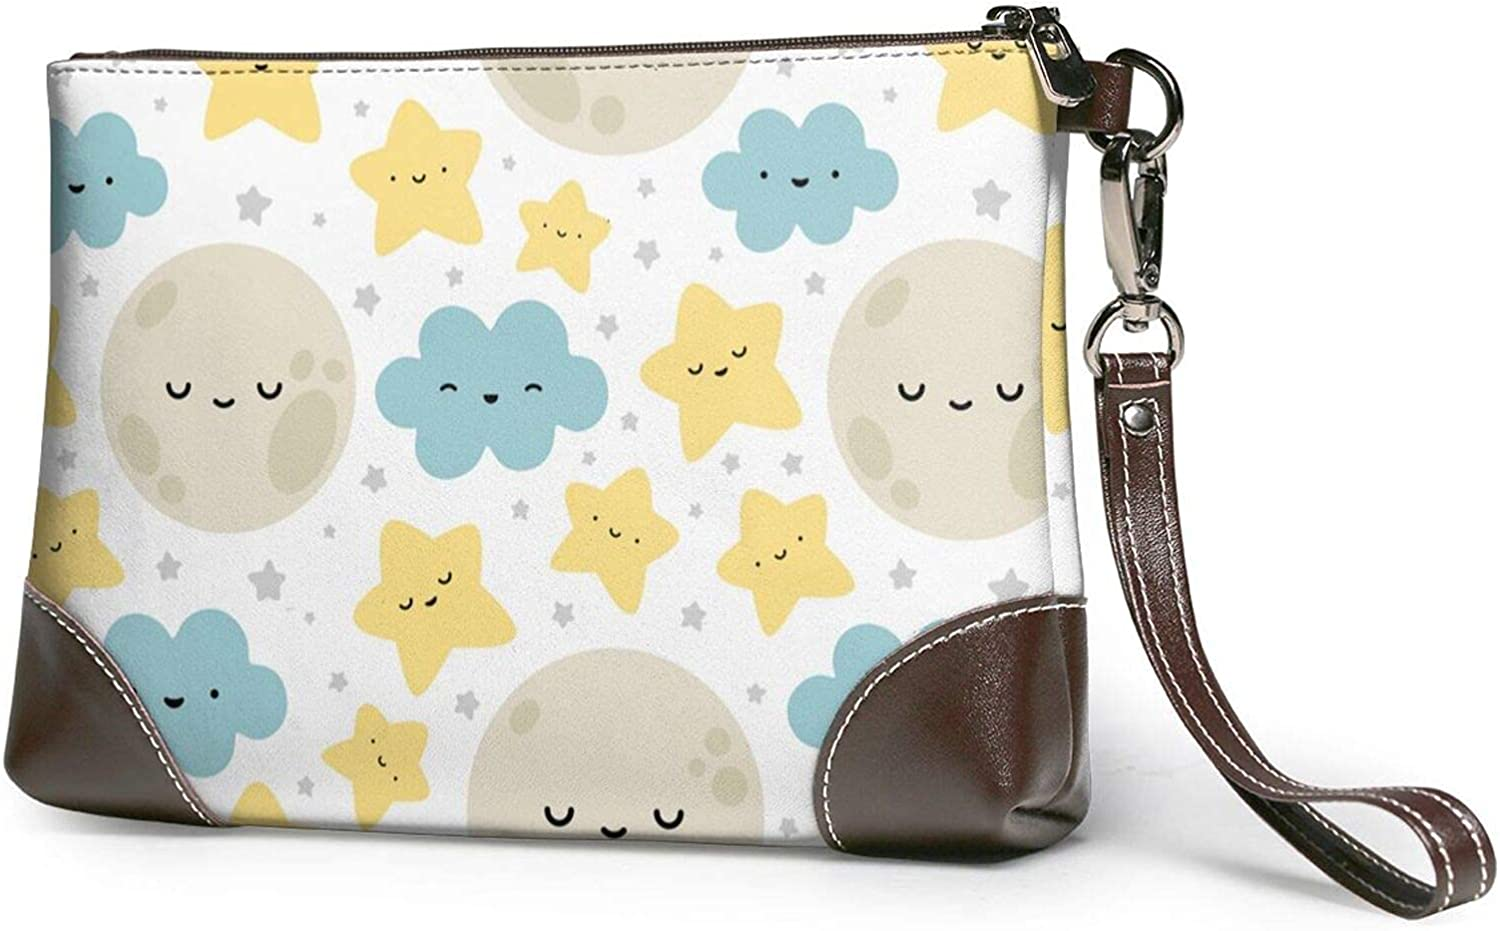 Moon Cloud Same day shipping Star Printed Clutch Wristlet Leather Detachable Purse Max 53% OFF